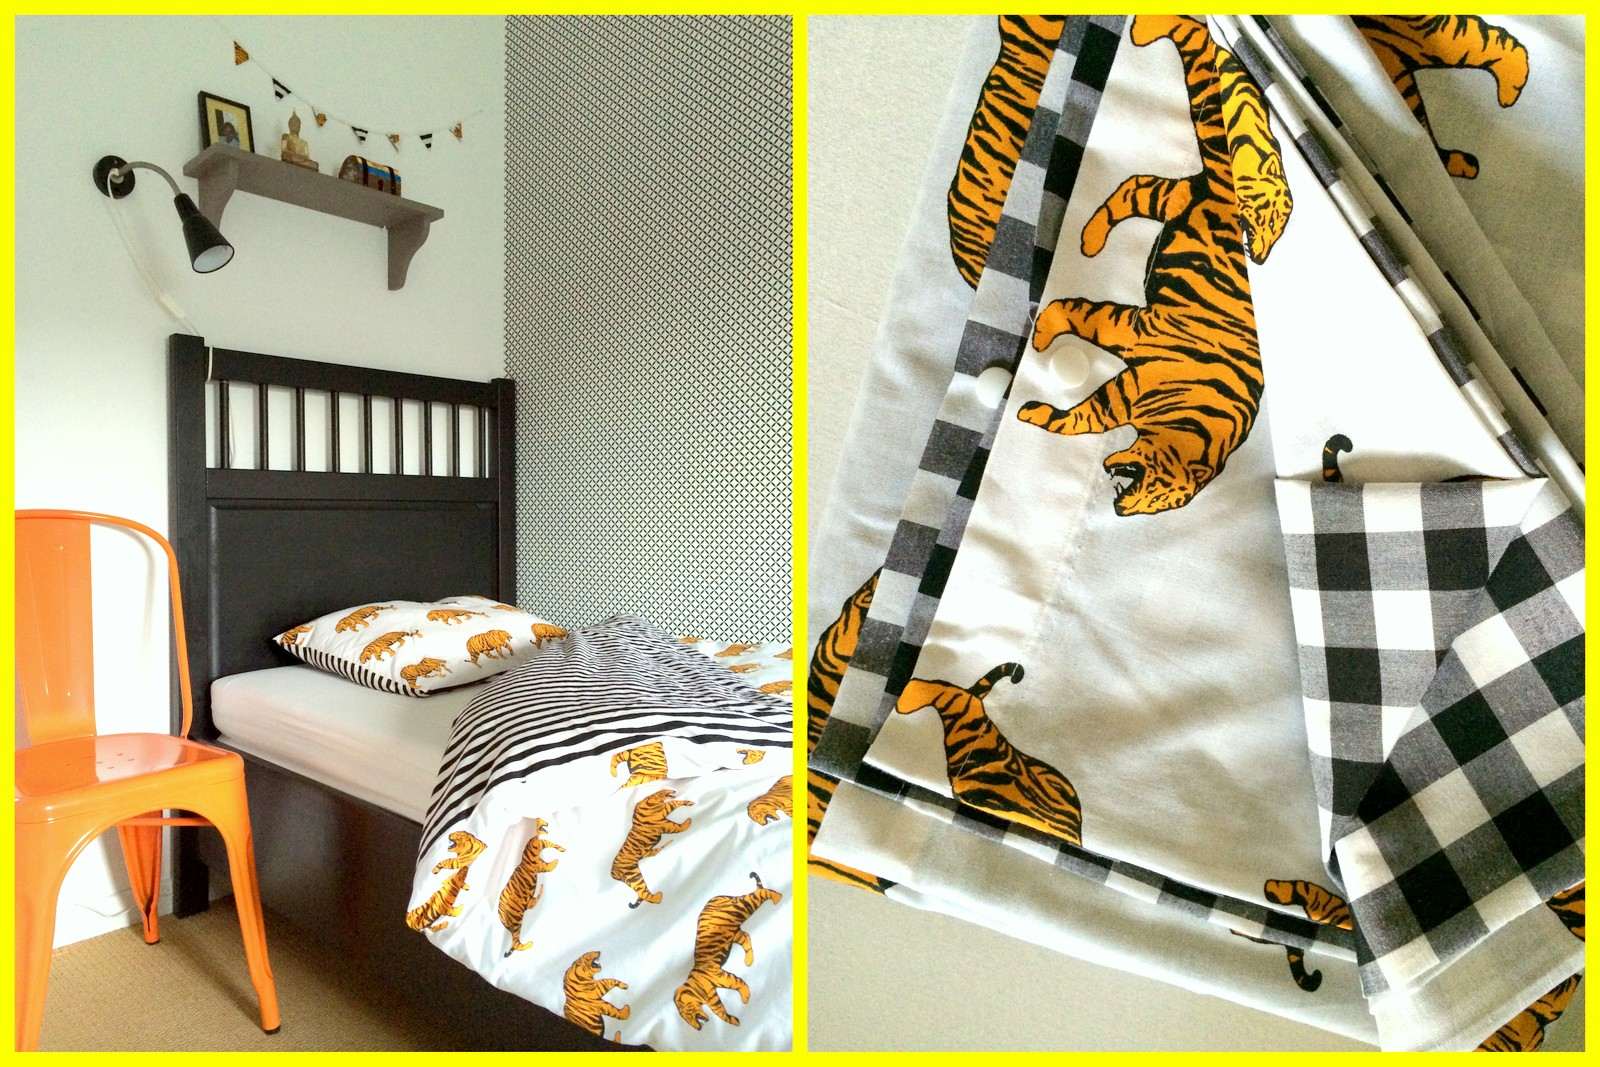 Jakob's room (bedding)